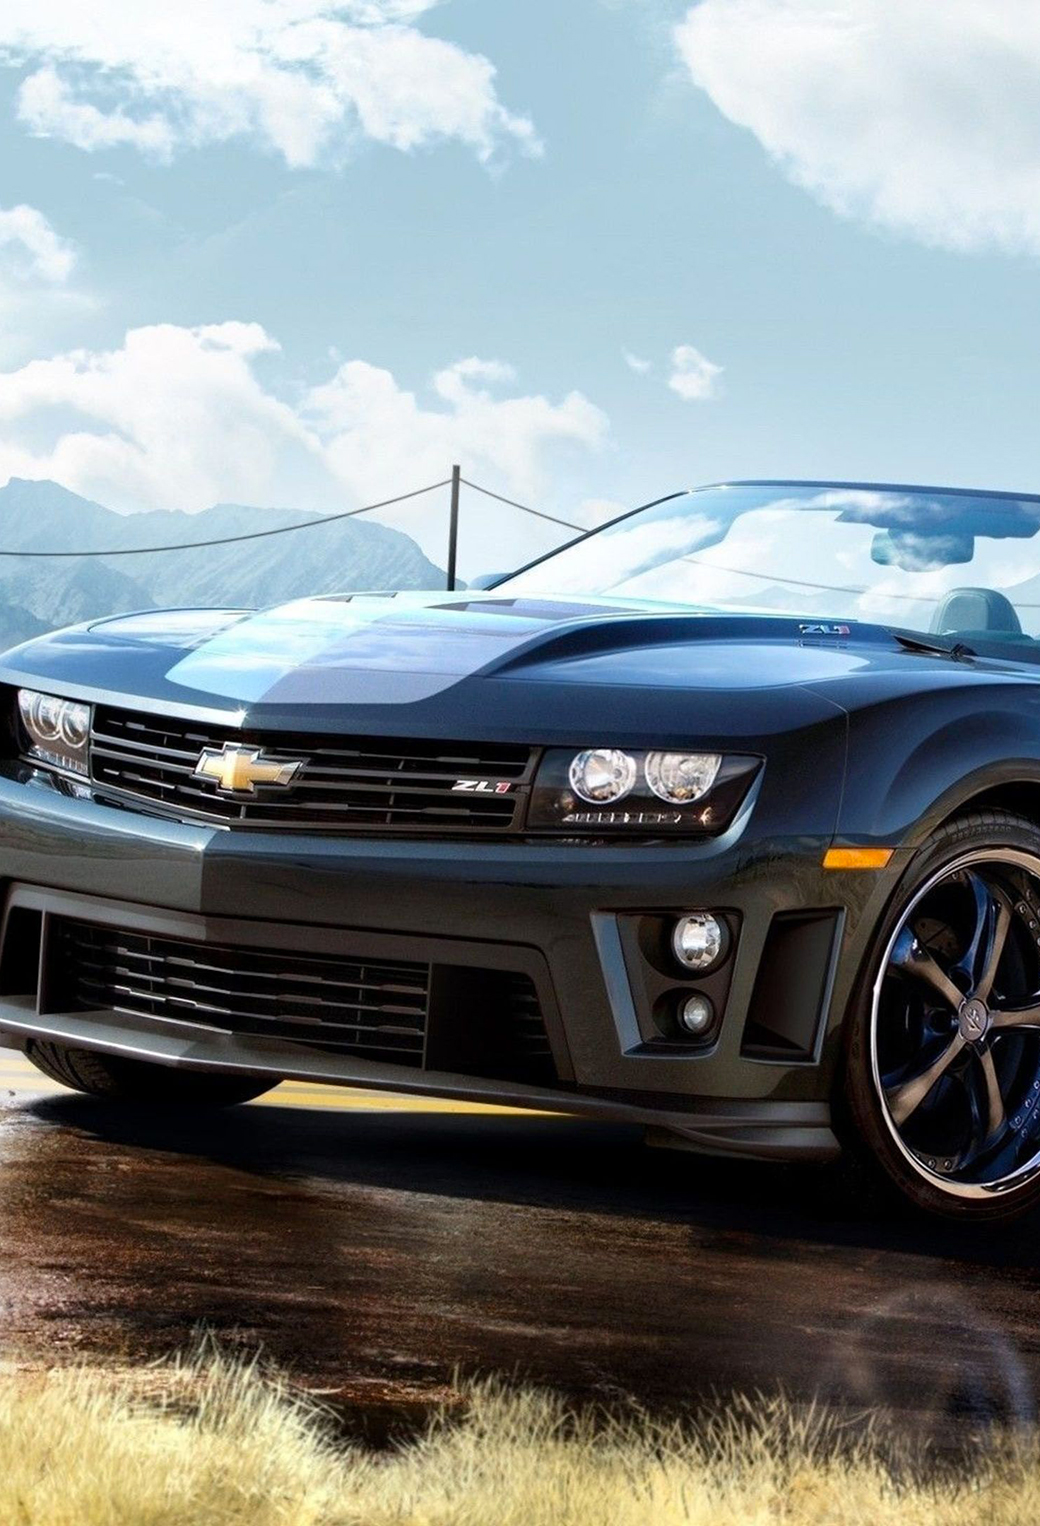 Chevrolet Camaro Zl1 Wallpaper For Iphone X 8 7 6